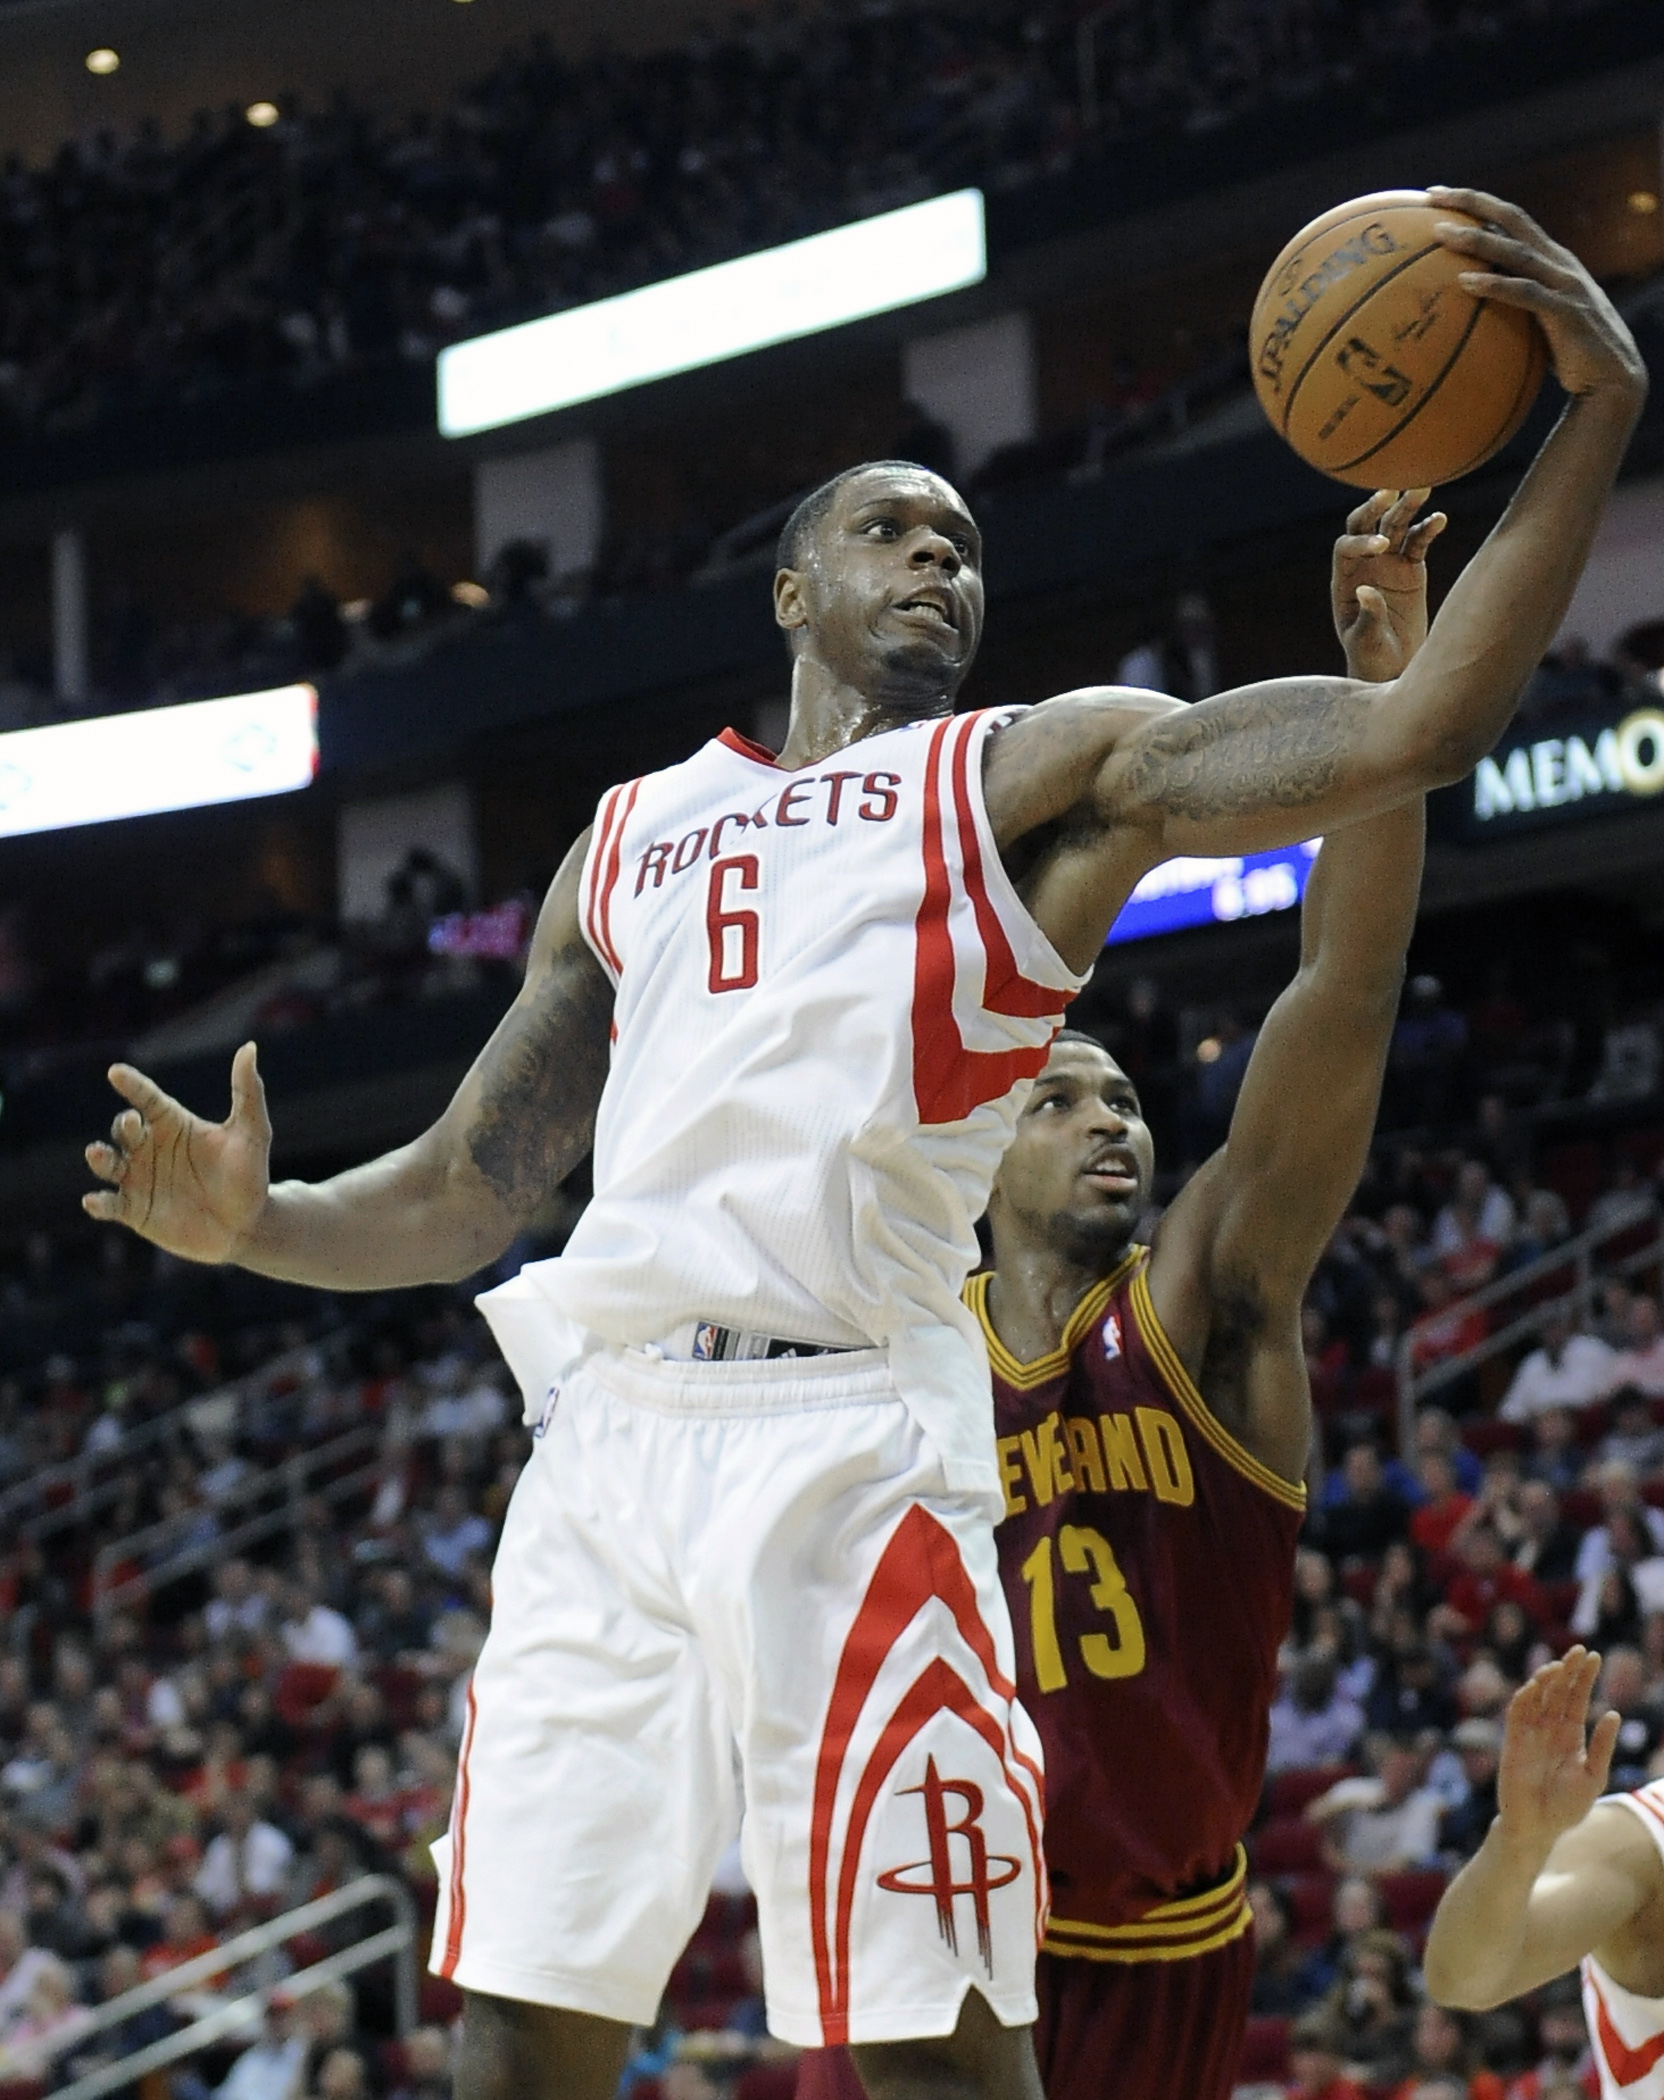 Lin has triple-double as Rockets down Cavs 106-92